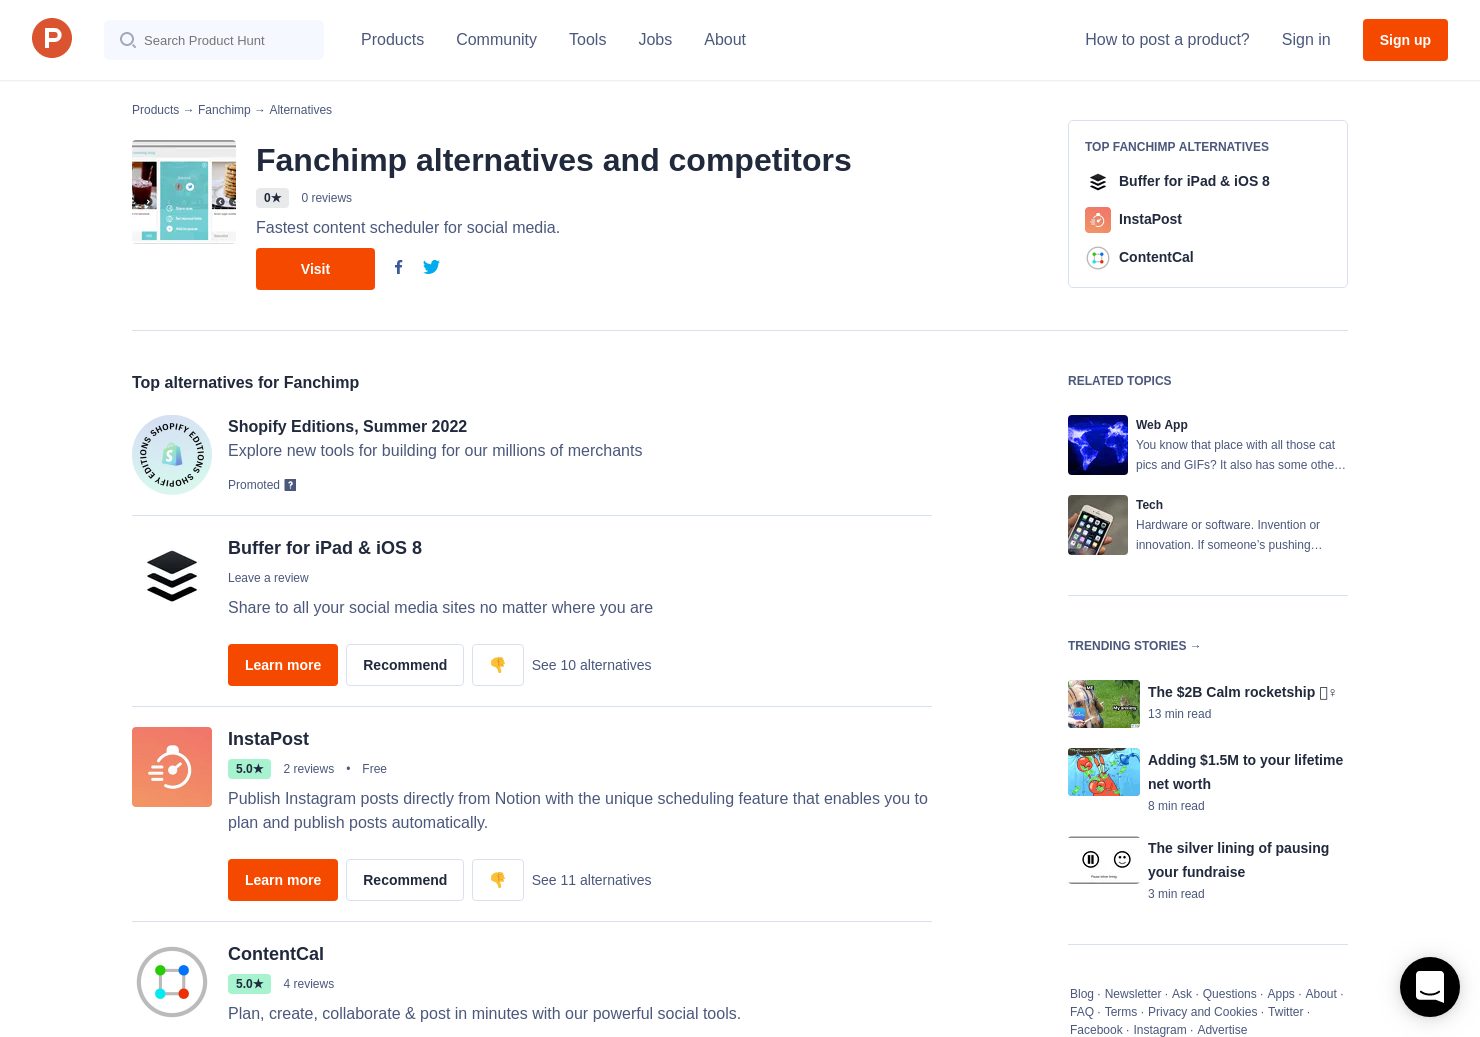 5 Alternatives to Fanchimp | Product Hunt